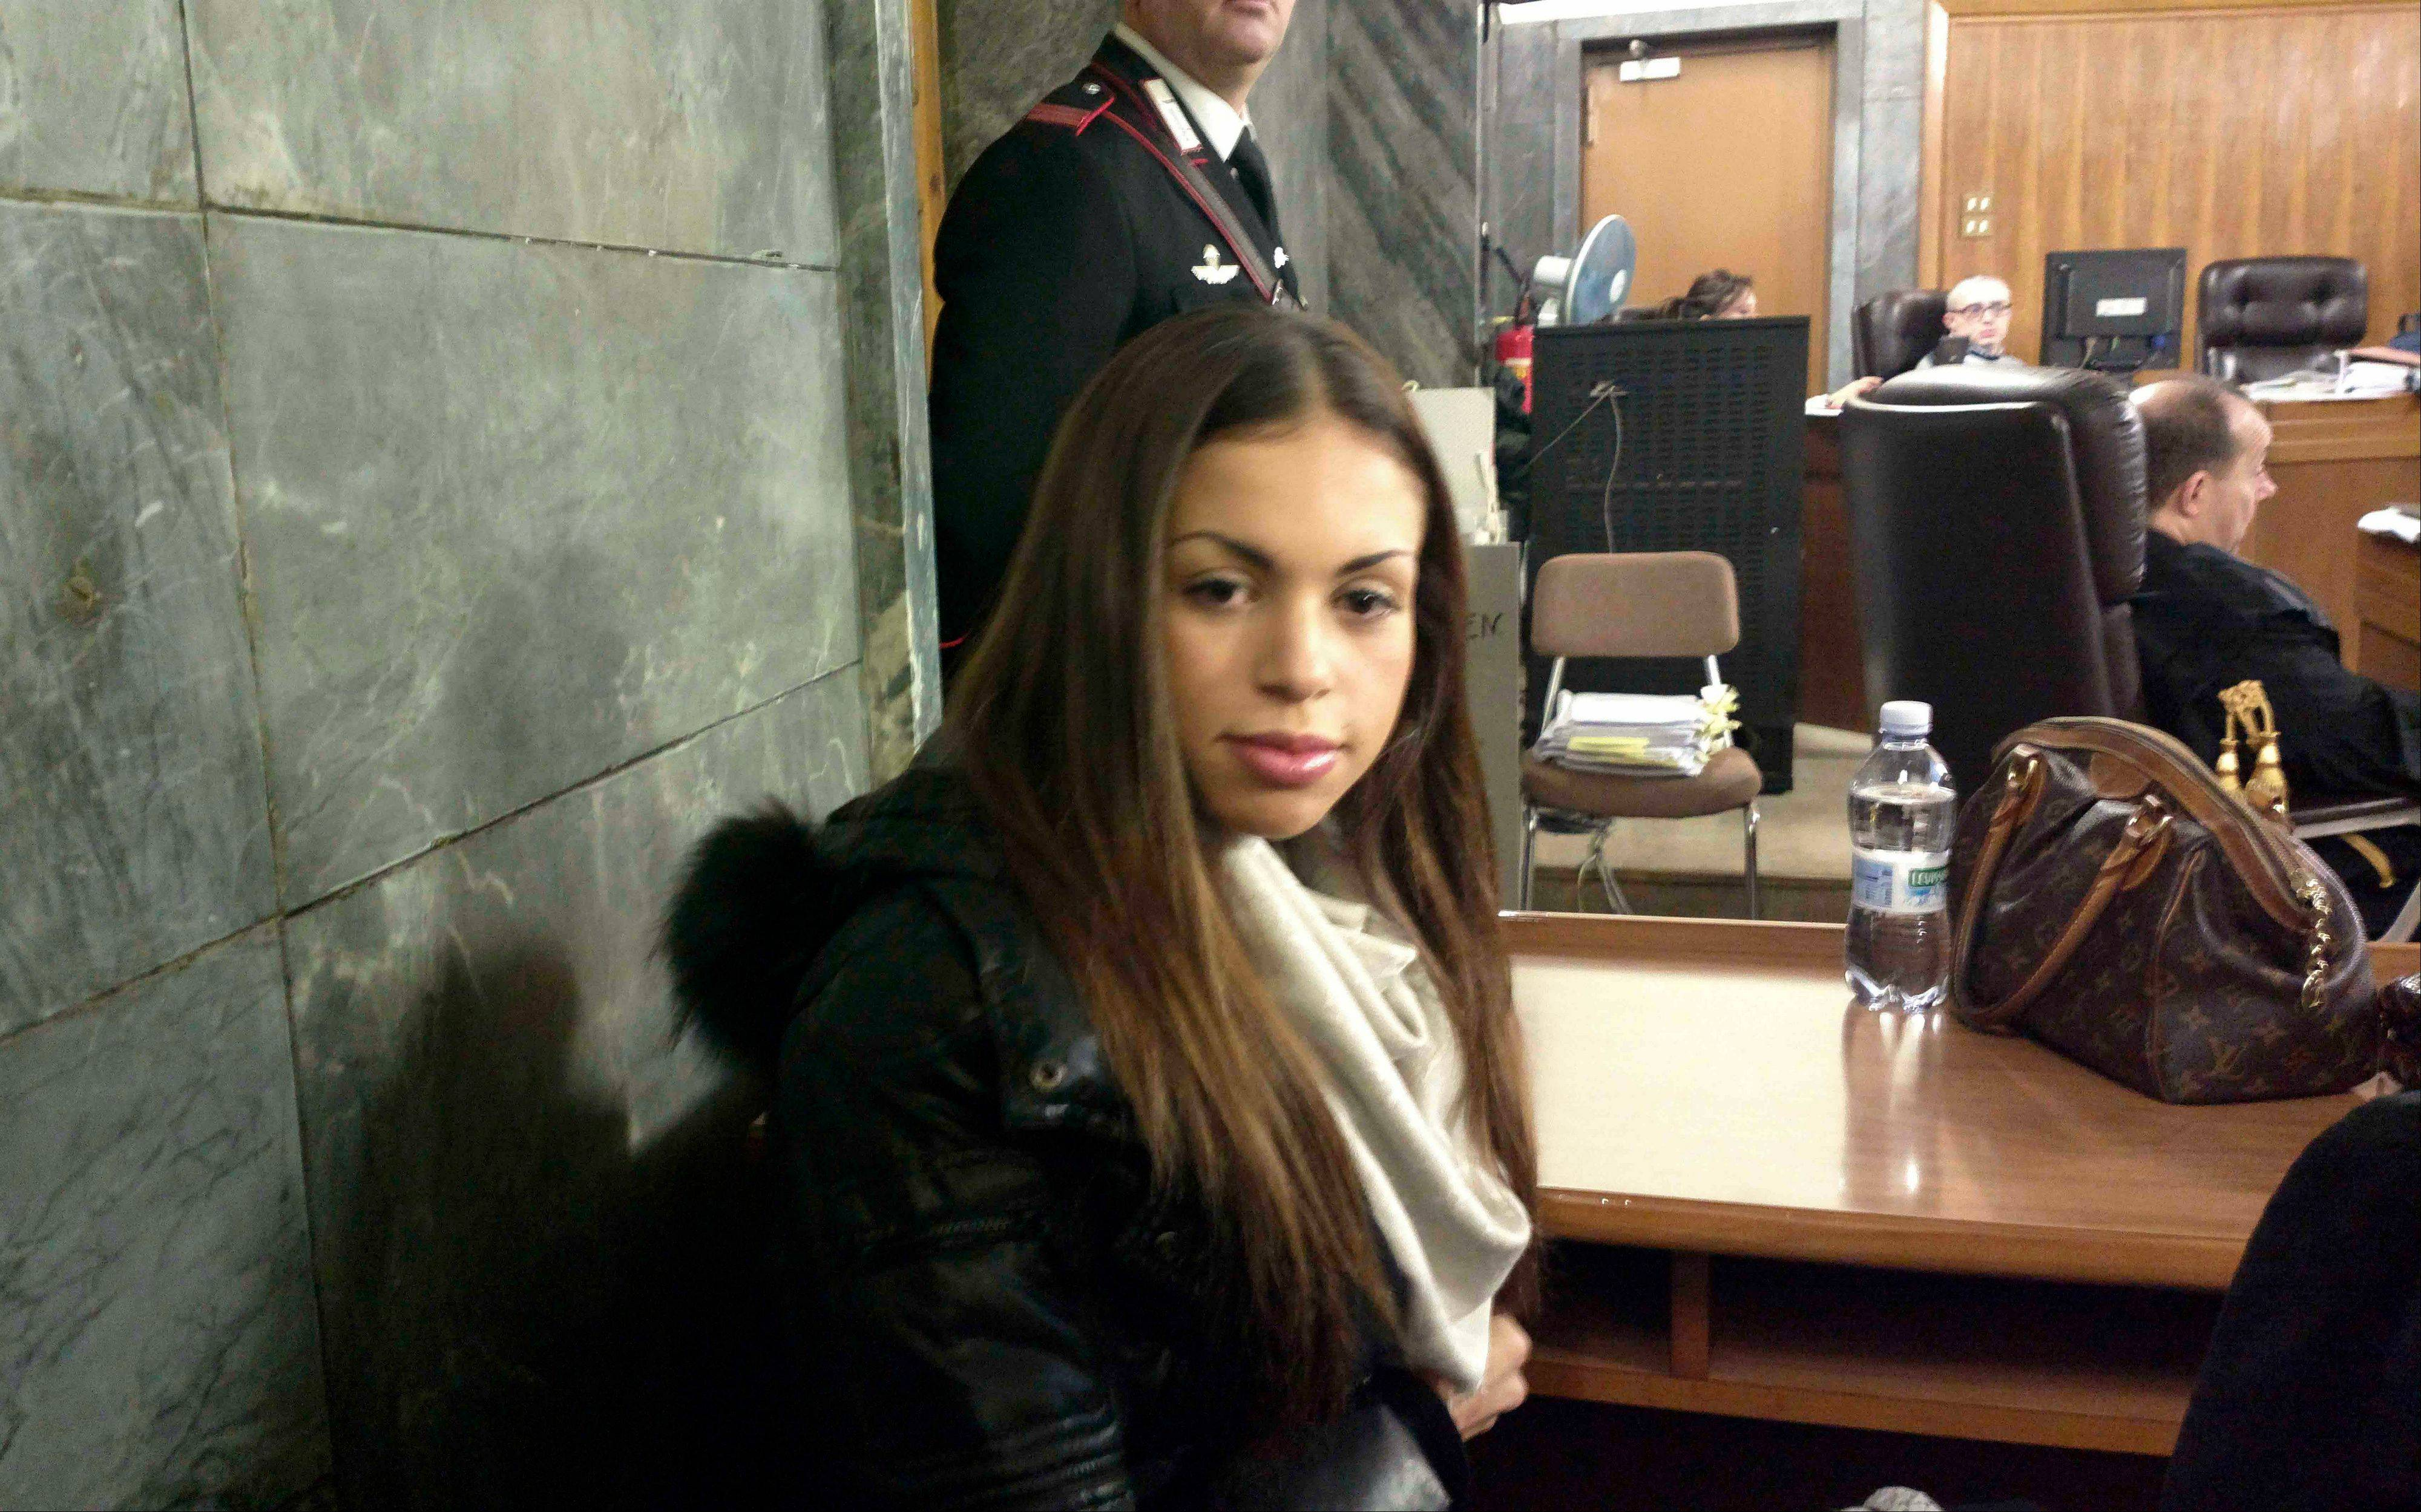 Karima el-Mahroug, the Moroccan woman at the center of ex-Premier Silvio Berlusconi�s sex-for-hire trial, sits in a courtroom prior to to testifying as a witness for the first time, in Milan, Monday. Berlusconi is accused of paying for sex with woman, better known as Ruby, when she was 17, and then trying to cover it up. Both deny sexual contact.